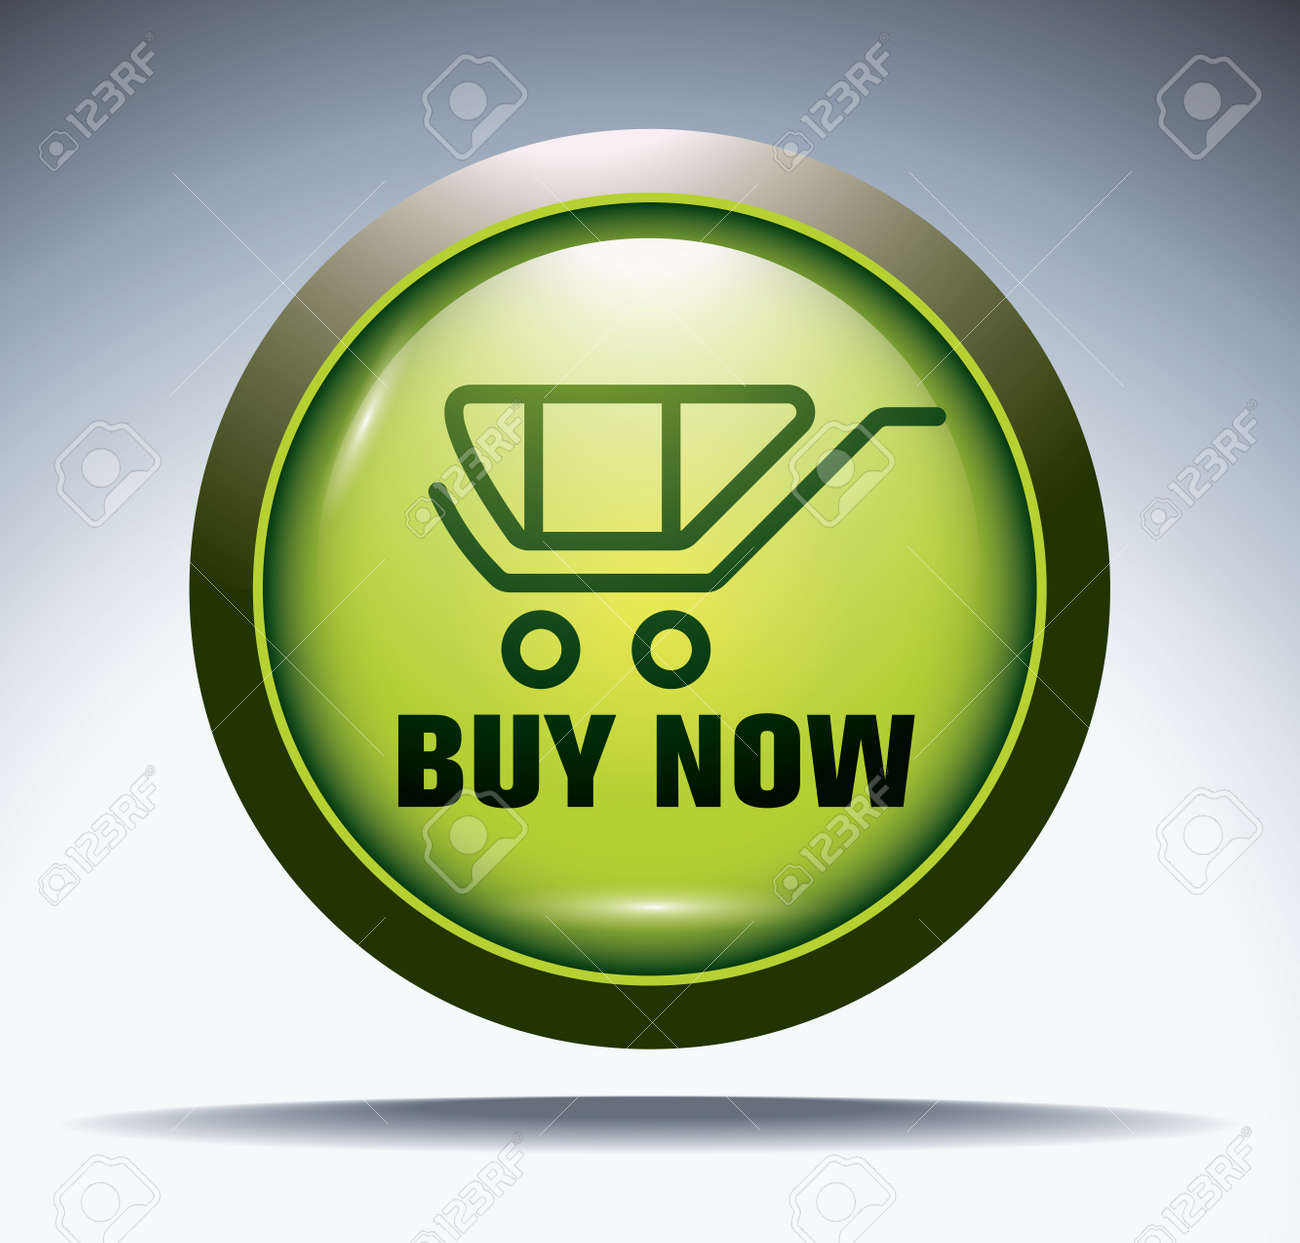 green -buy now- button Stock Vector - 12174027